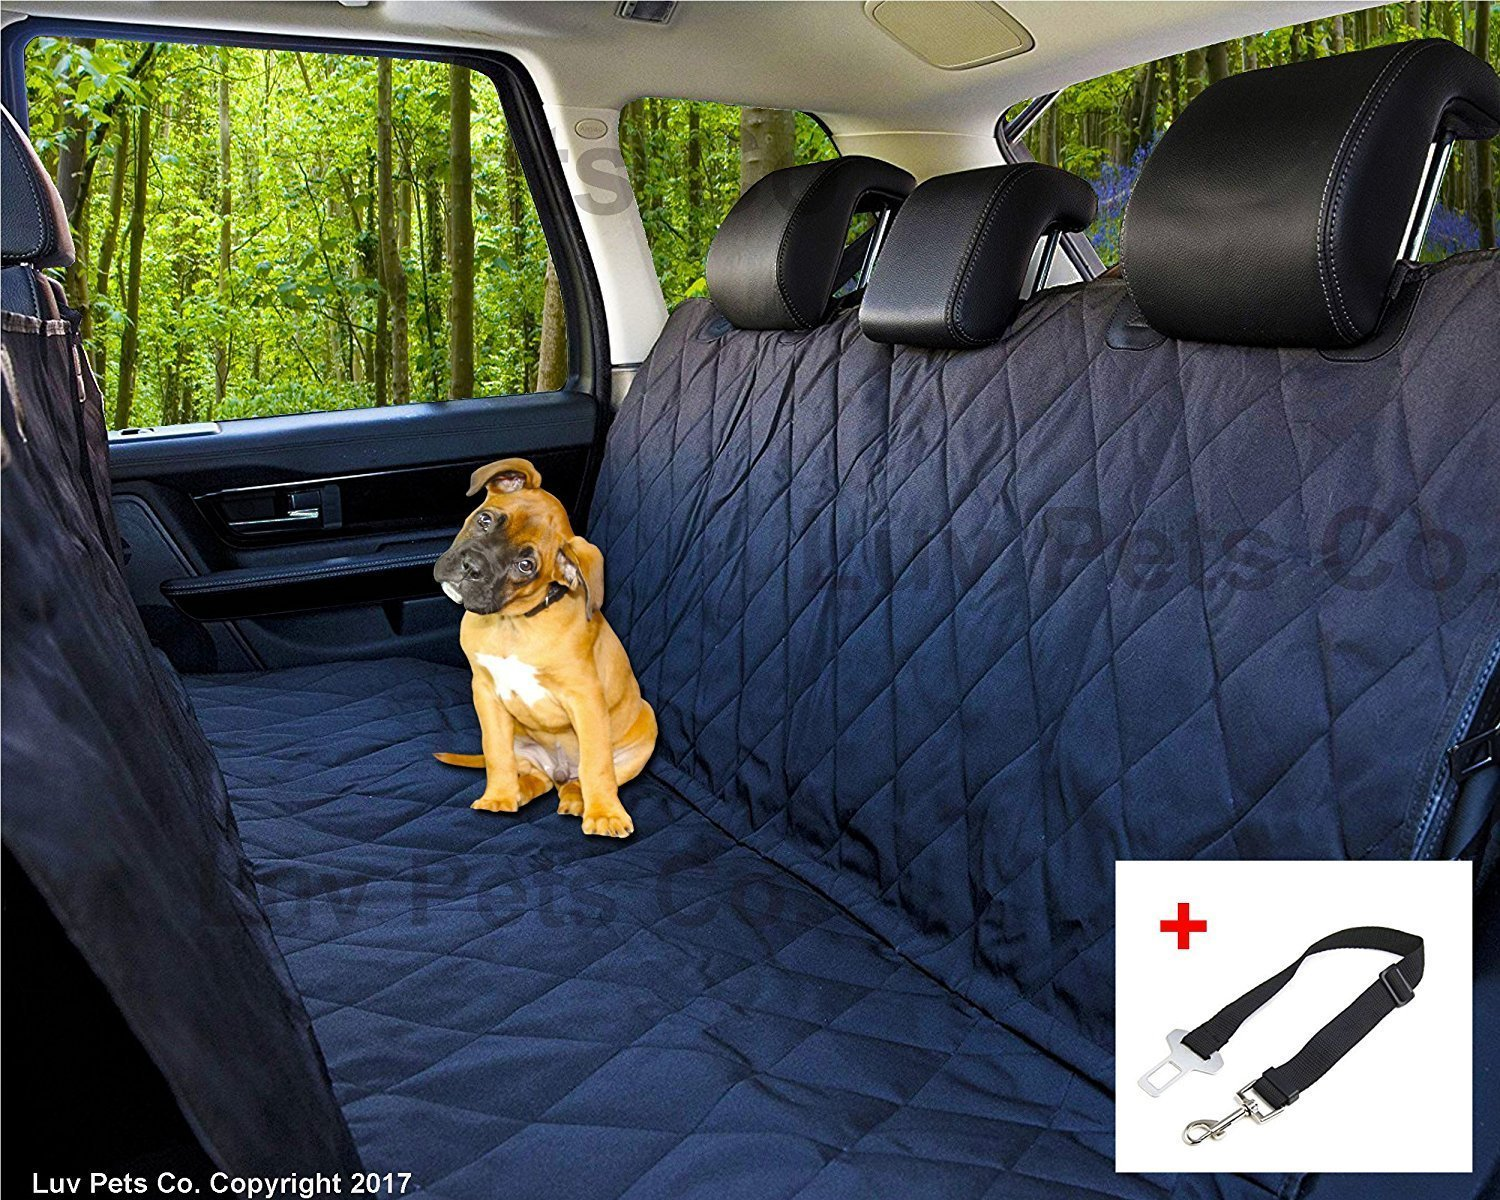 Terrific Value Bright Durable Car Pet Foldable Seat Cover Waterproof Scratchproof Dog Protector Hammock sky-blue